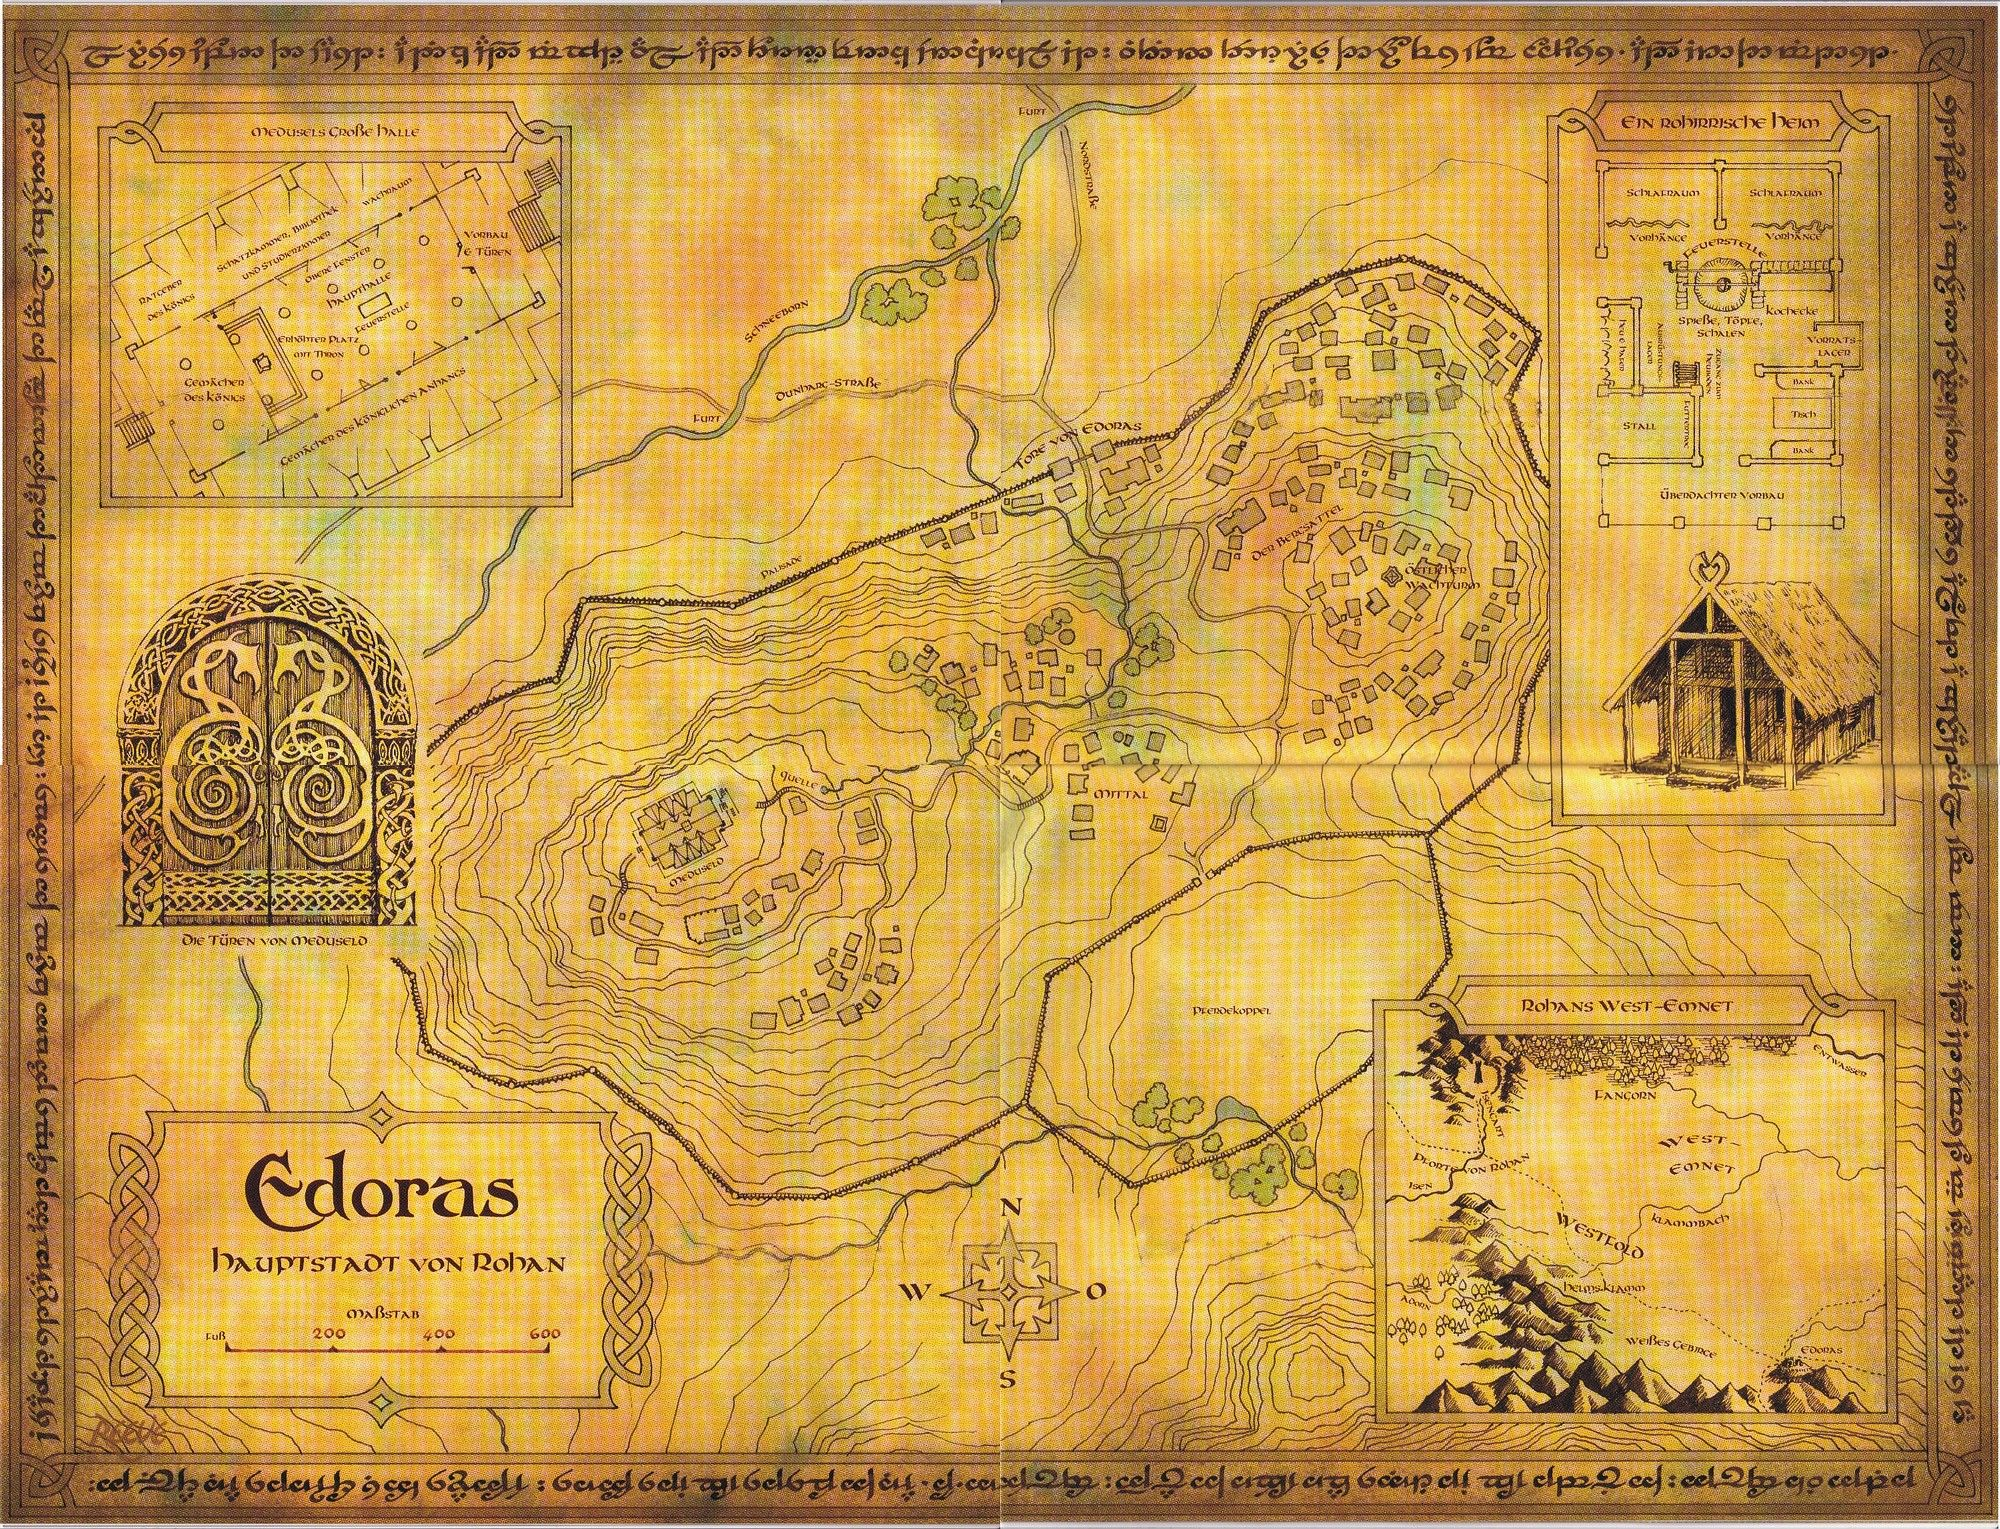 Jrr Tolkien Lord Of The Rings Related Books